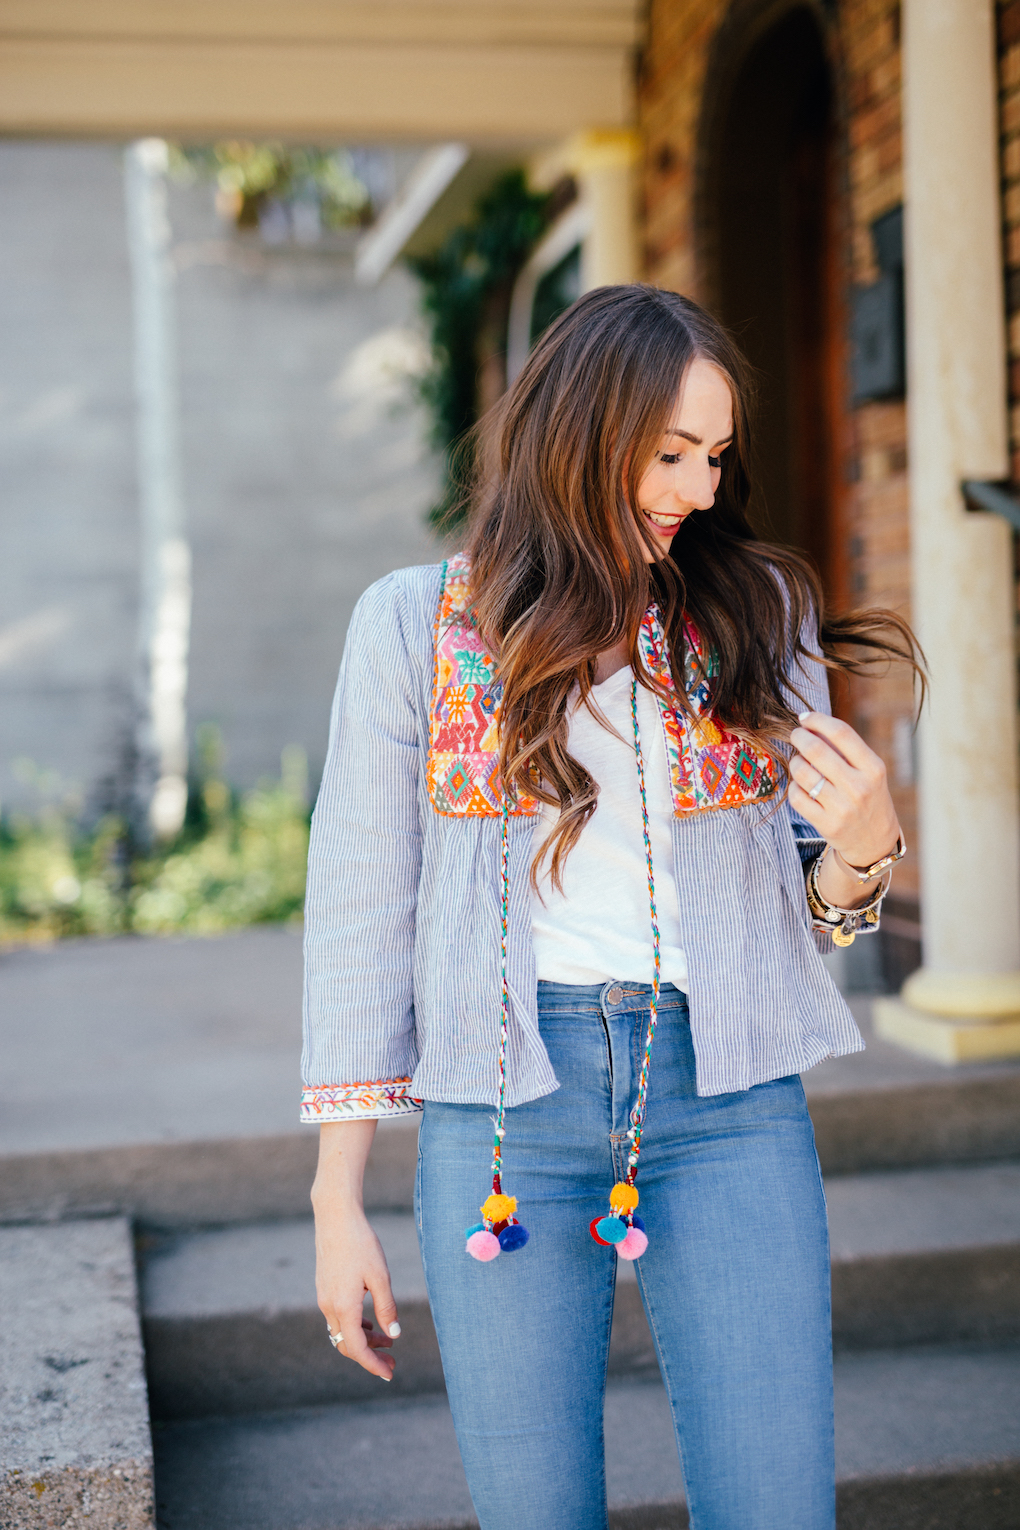 Girl with loose brown hair wearing distressed denim jeans and blue stripe embroidered jacket with pom pom tassels